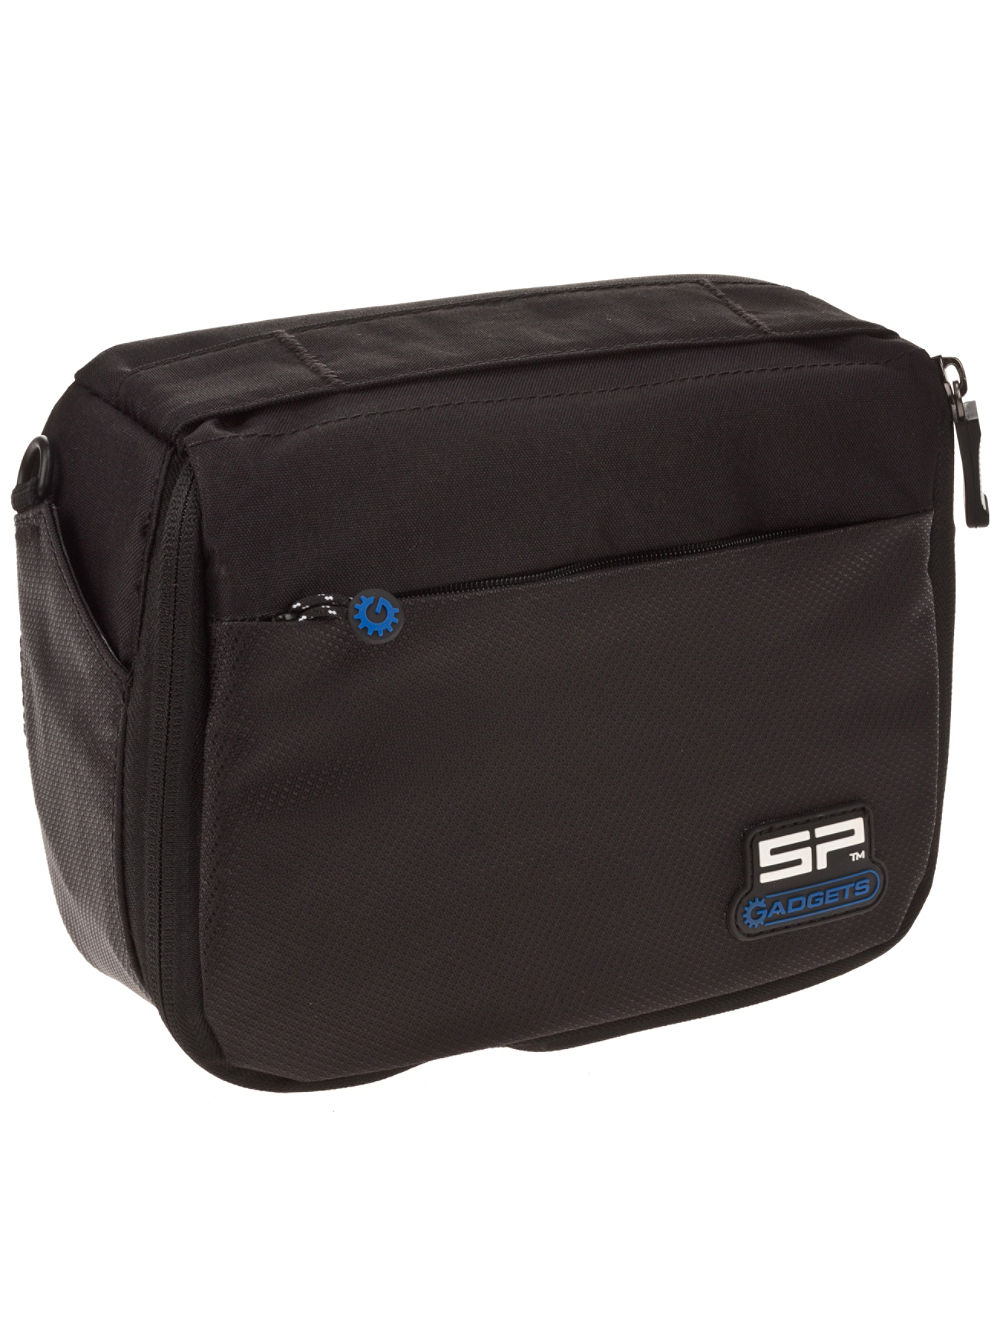 sp-gadgets-soft-case